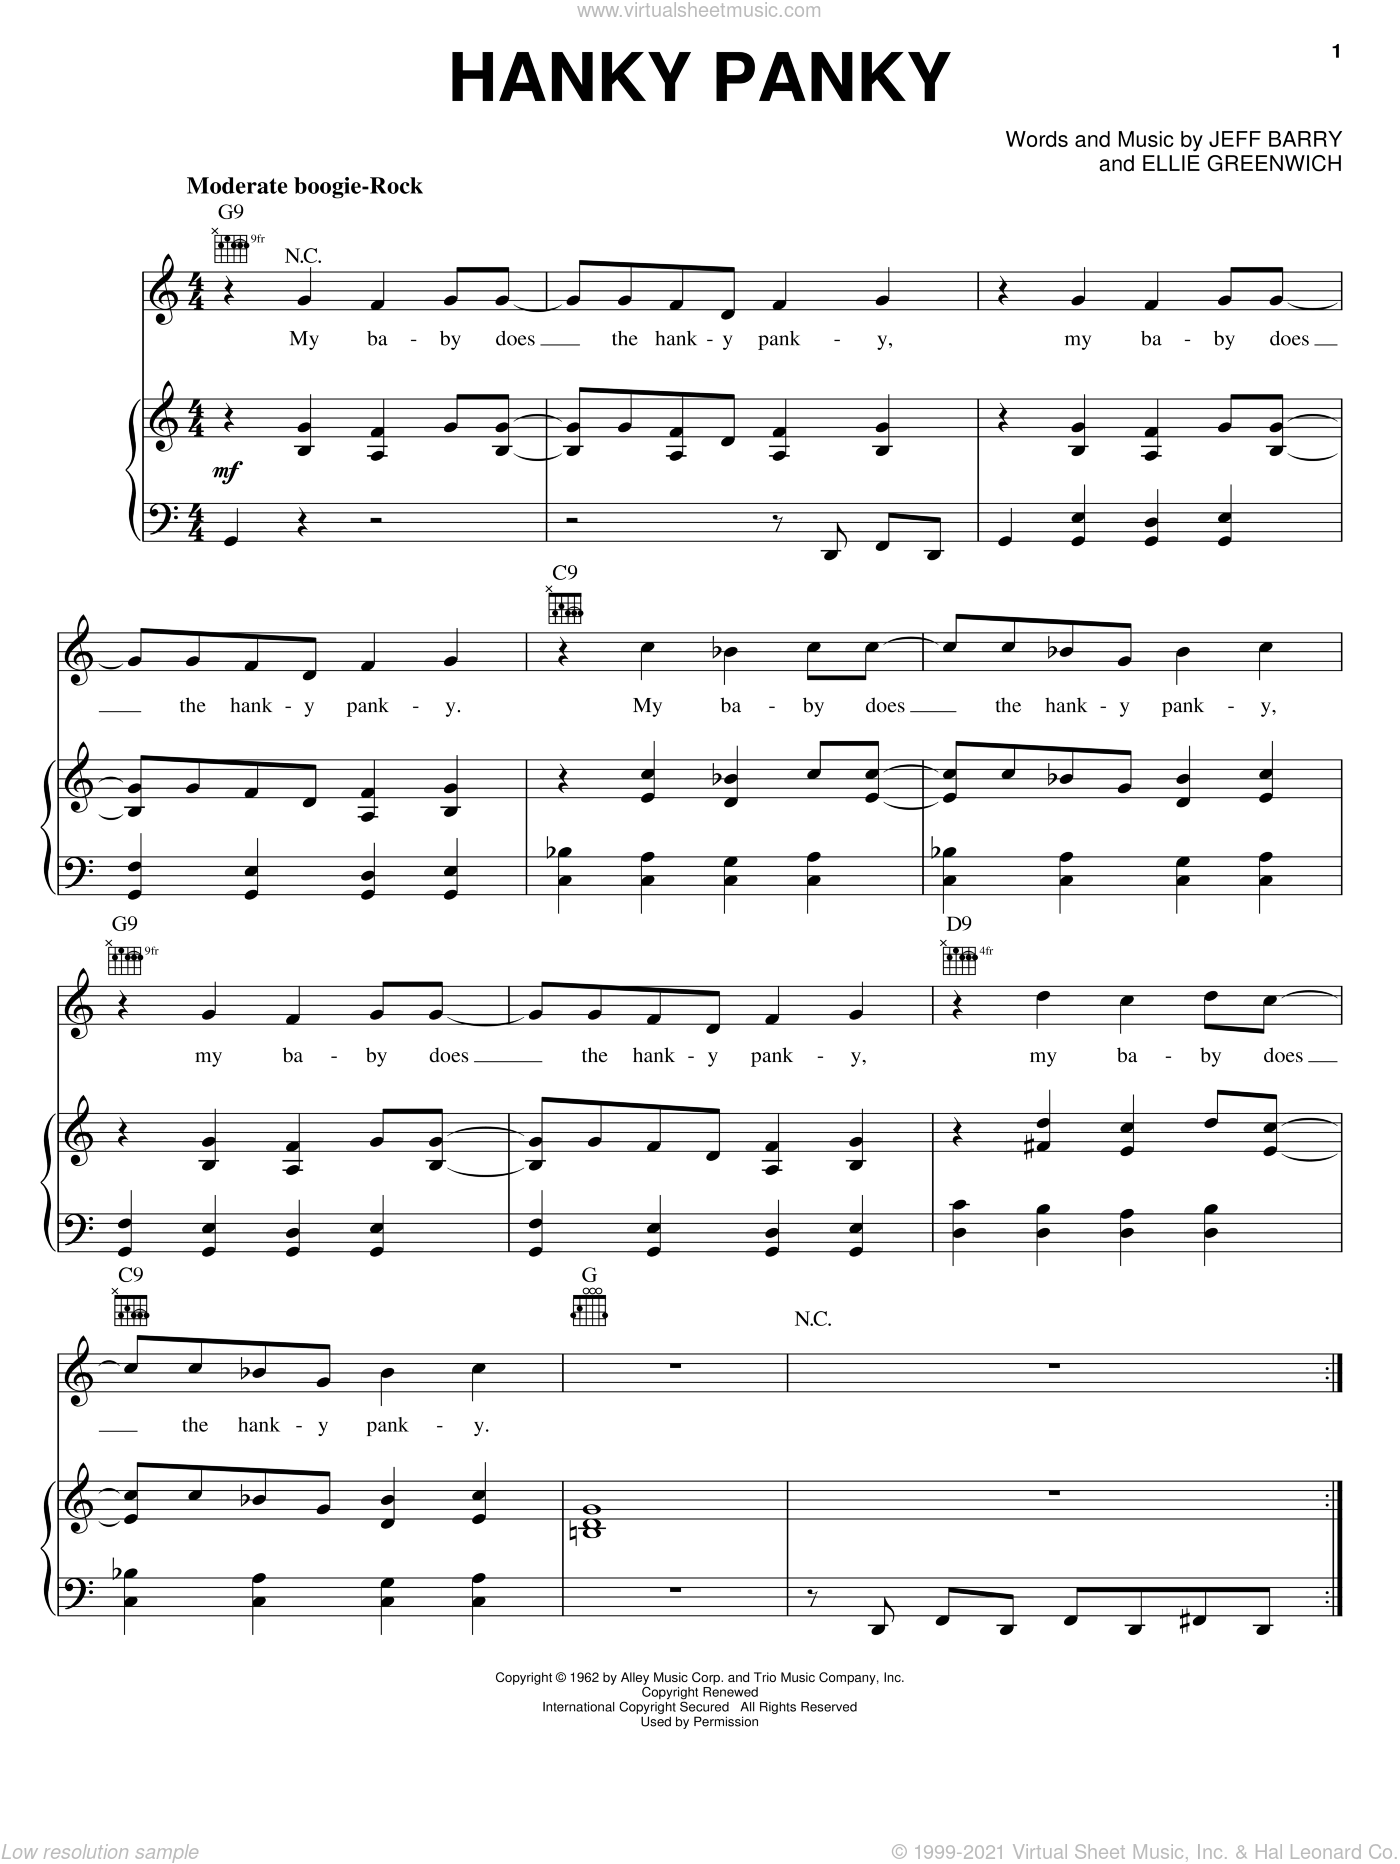 Hanky Panky sheet music for voice, piano or guitar by Jeff Barry